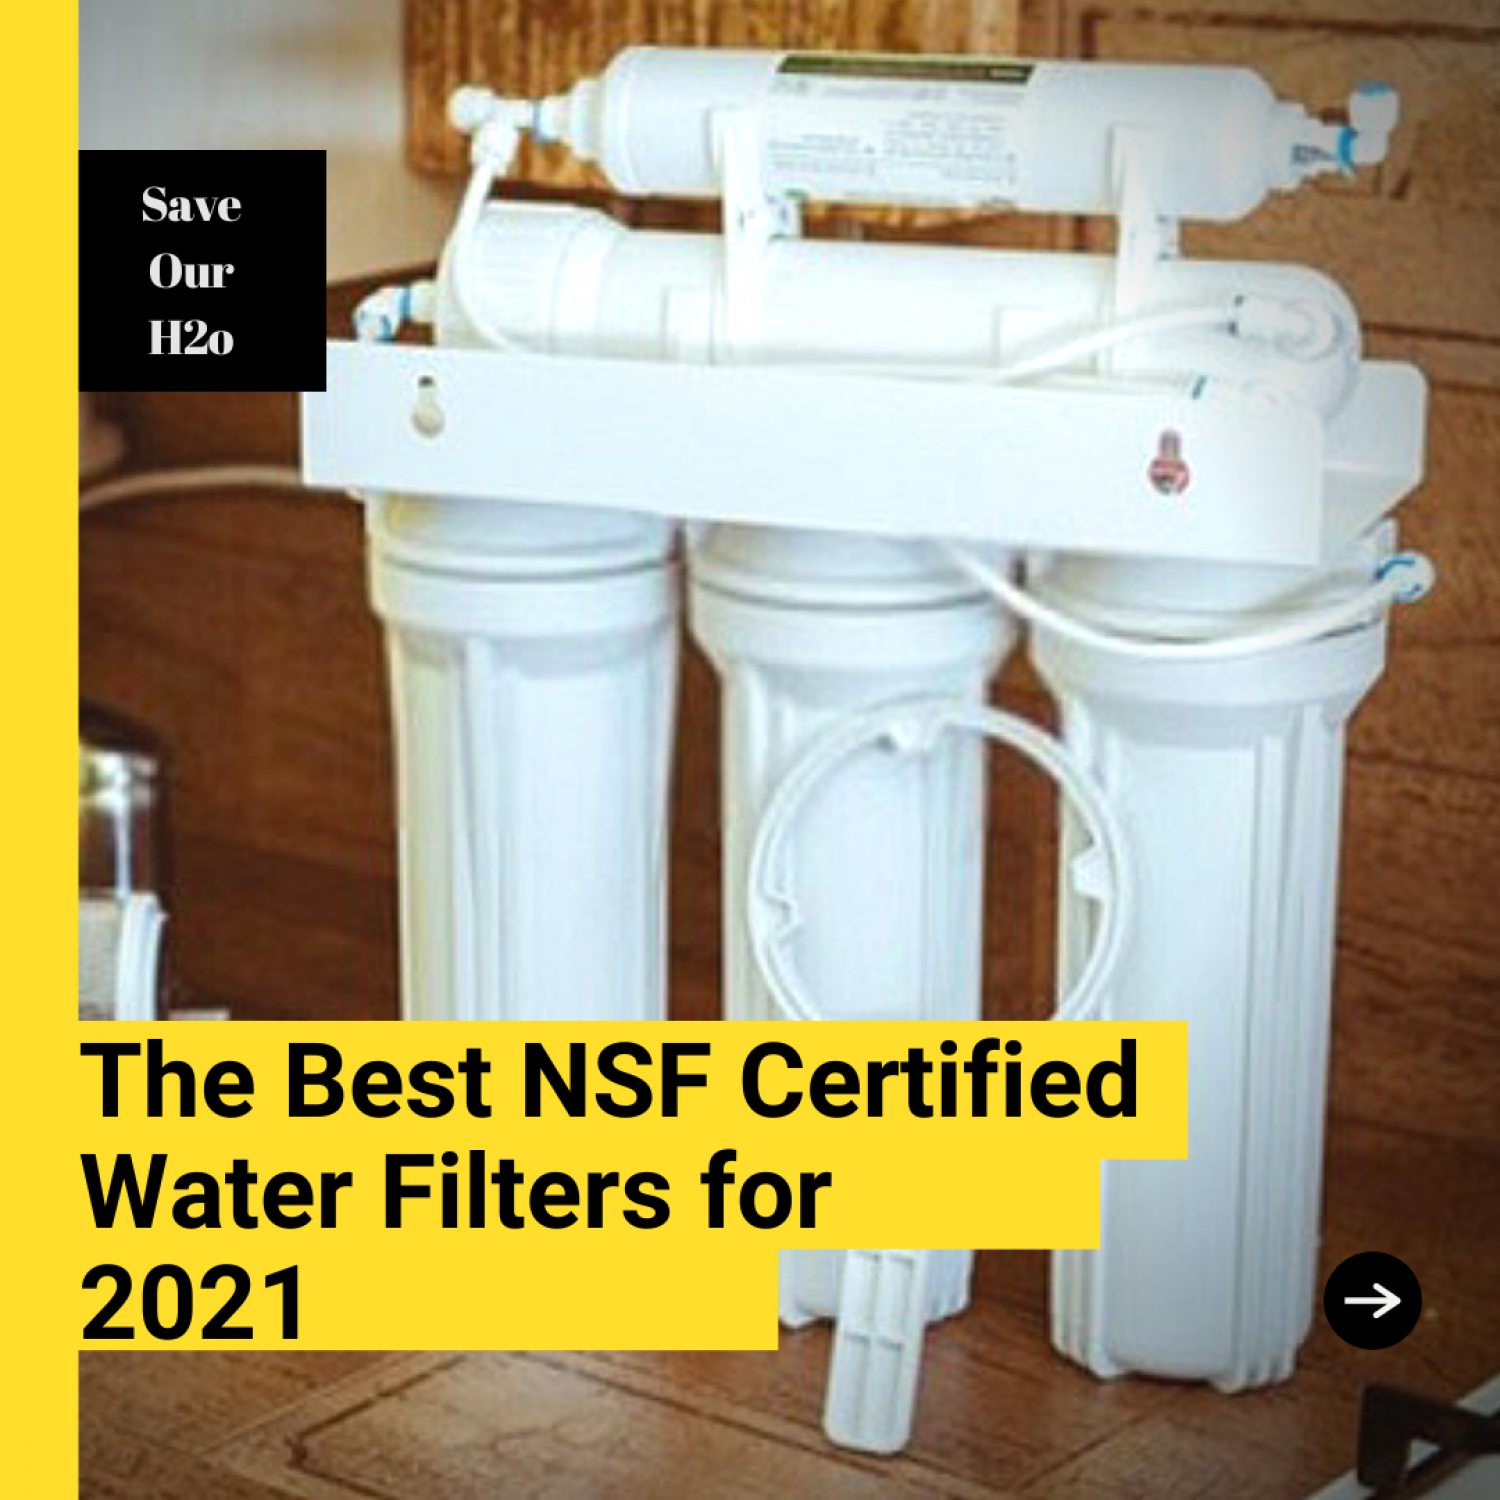 The Best NSF Certified Water Filters for 2021 Infographic